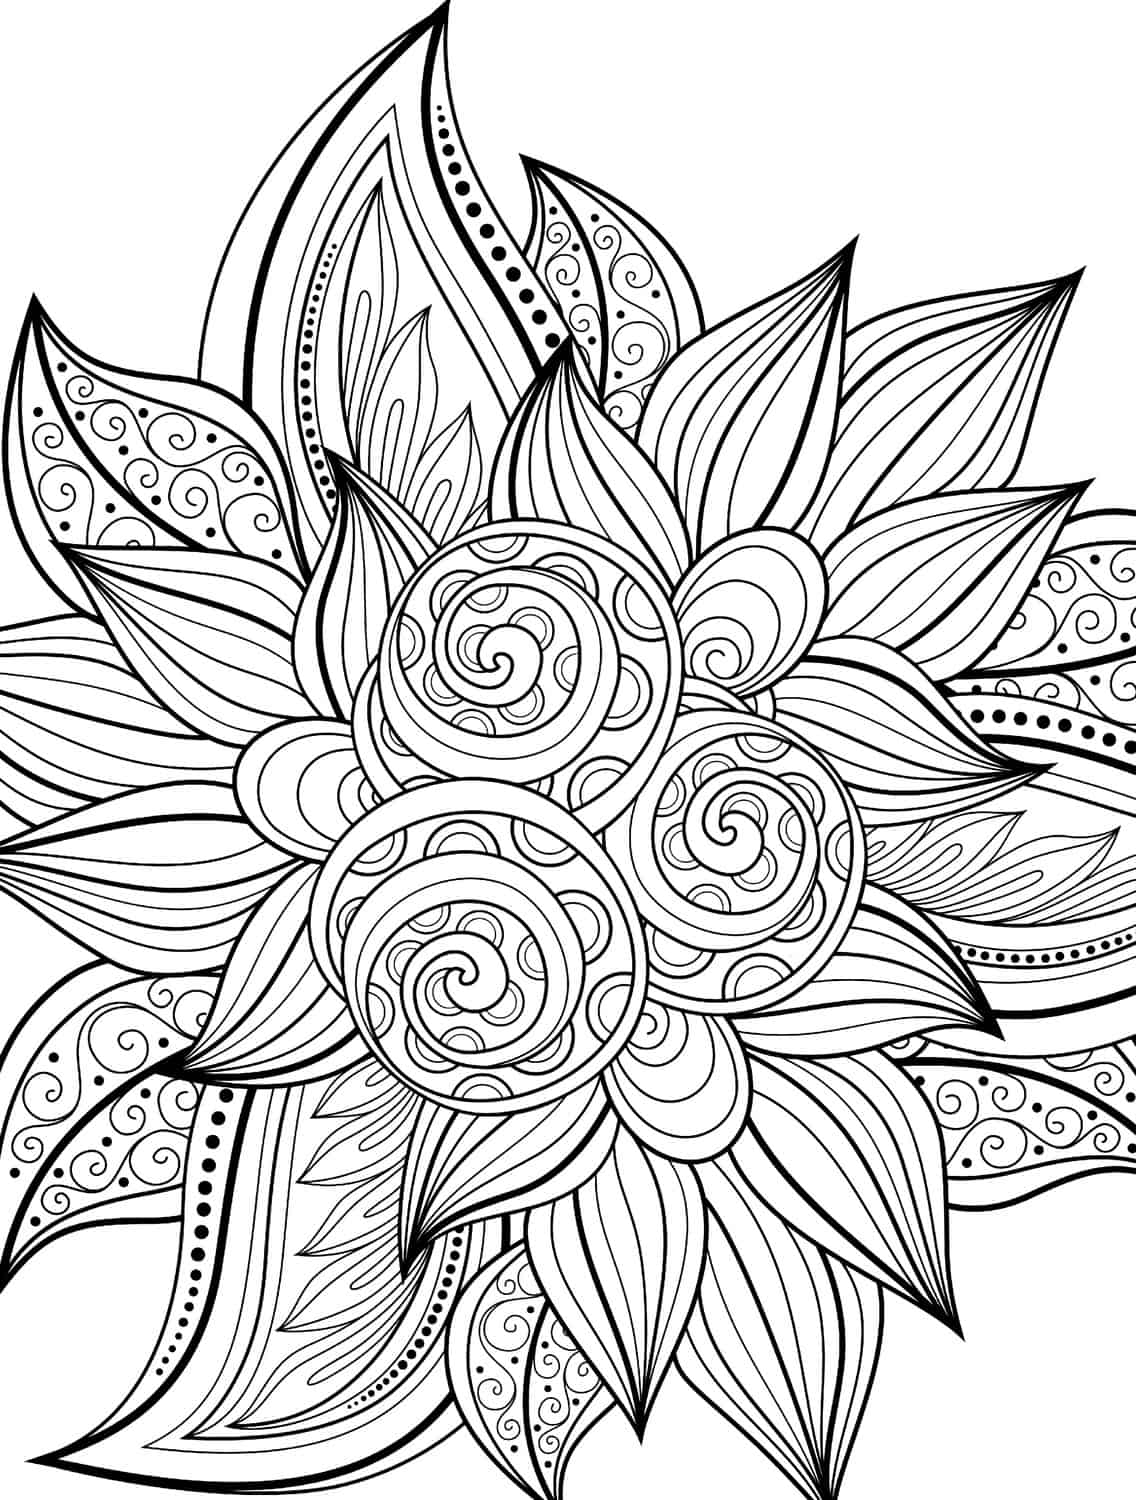 10 free printable holiday adult coloring pages for Coloring pages cool